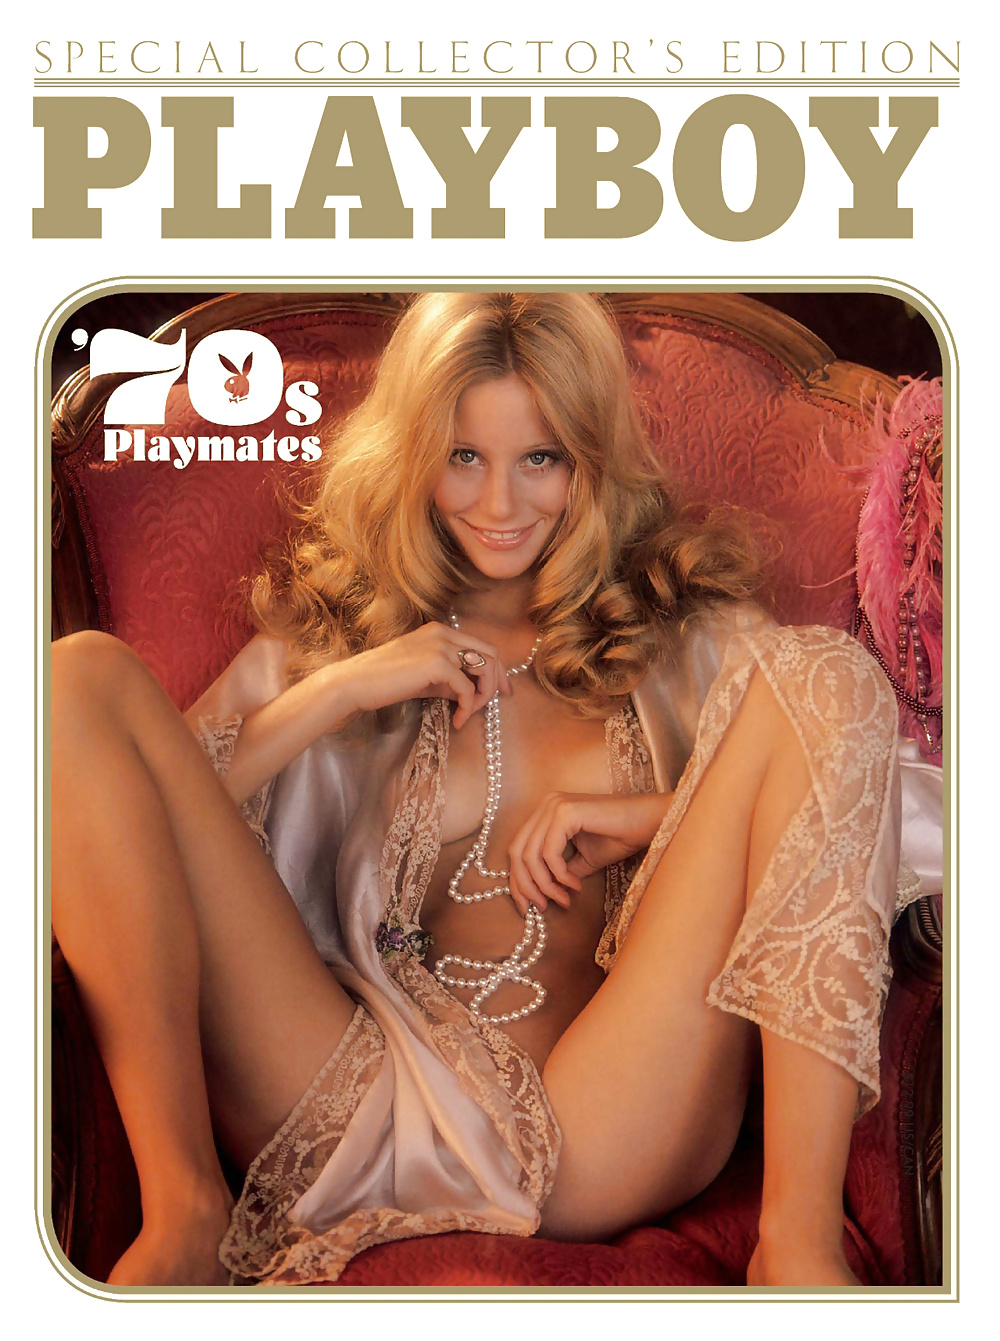 Celeb Naked Pictures Of Playboy Playmates Gif